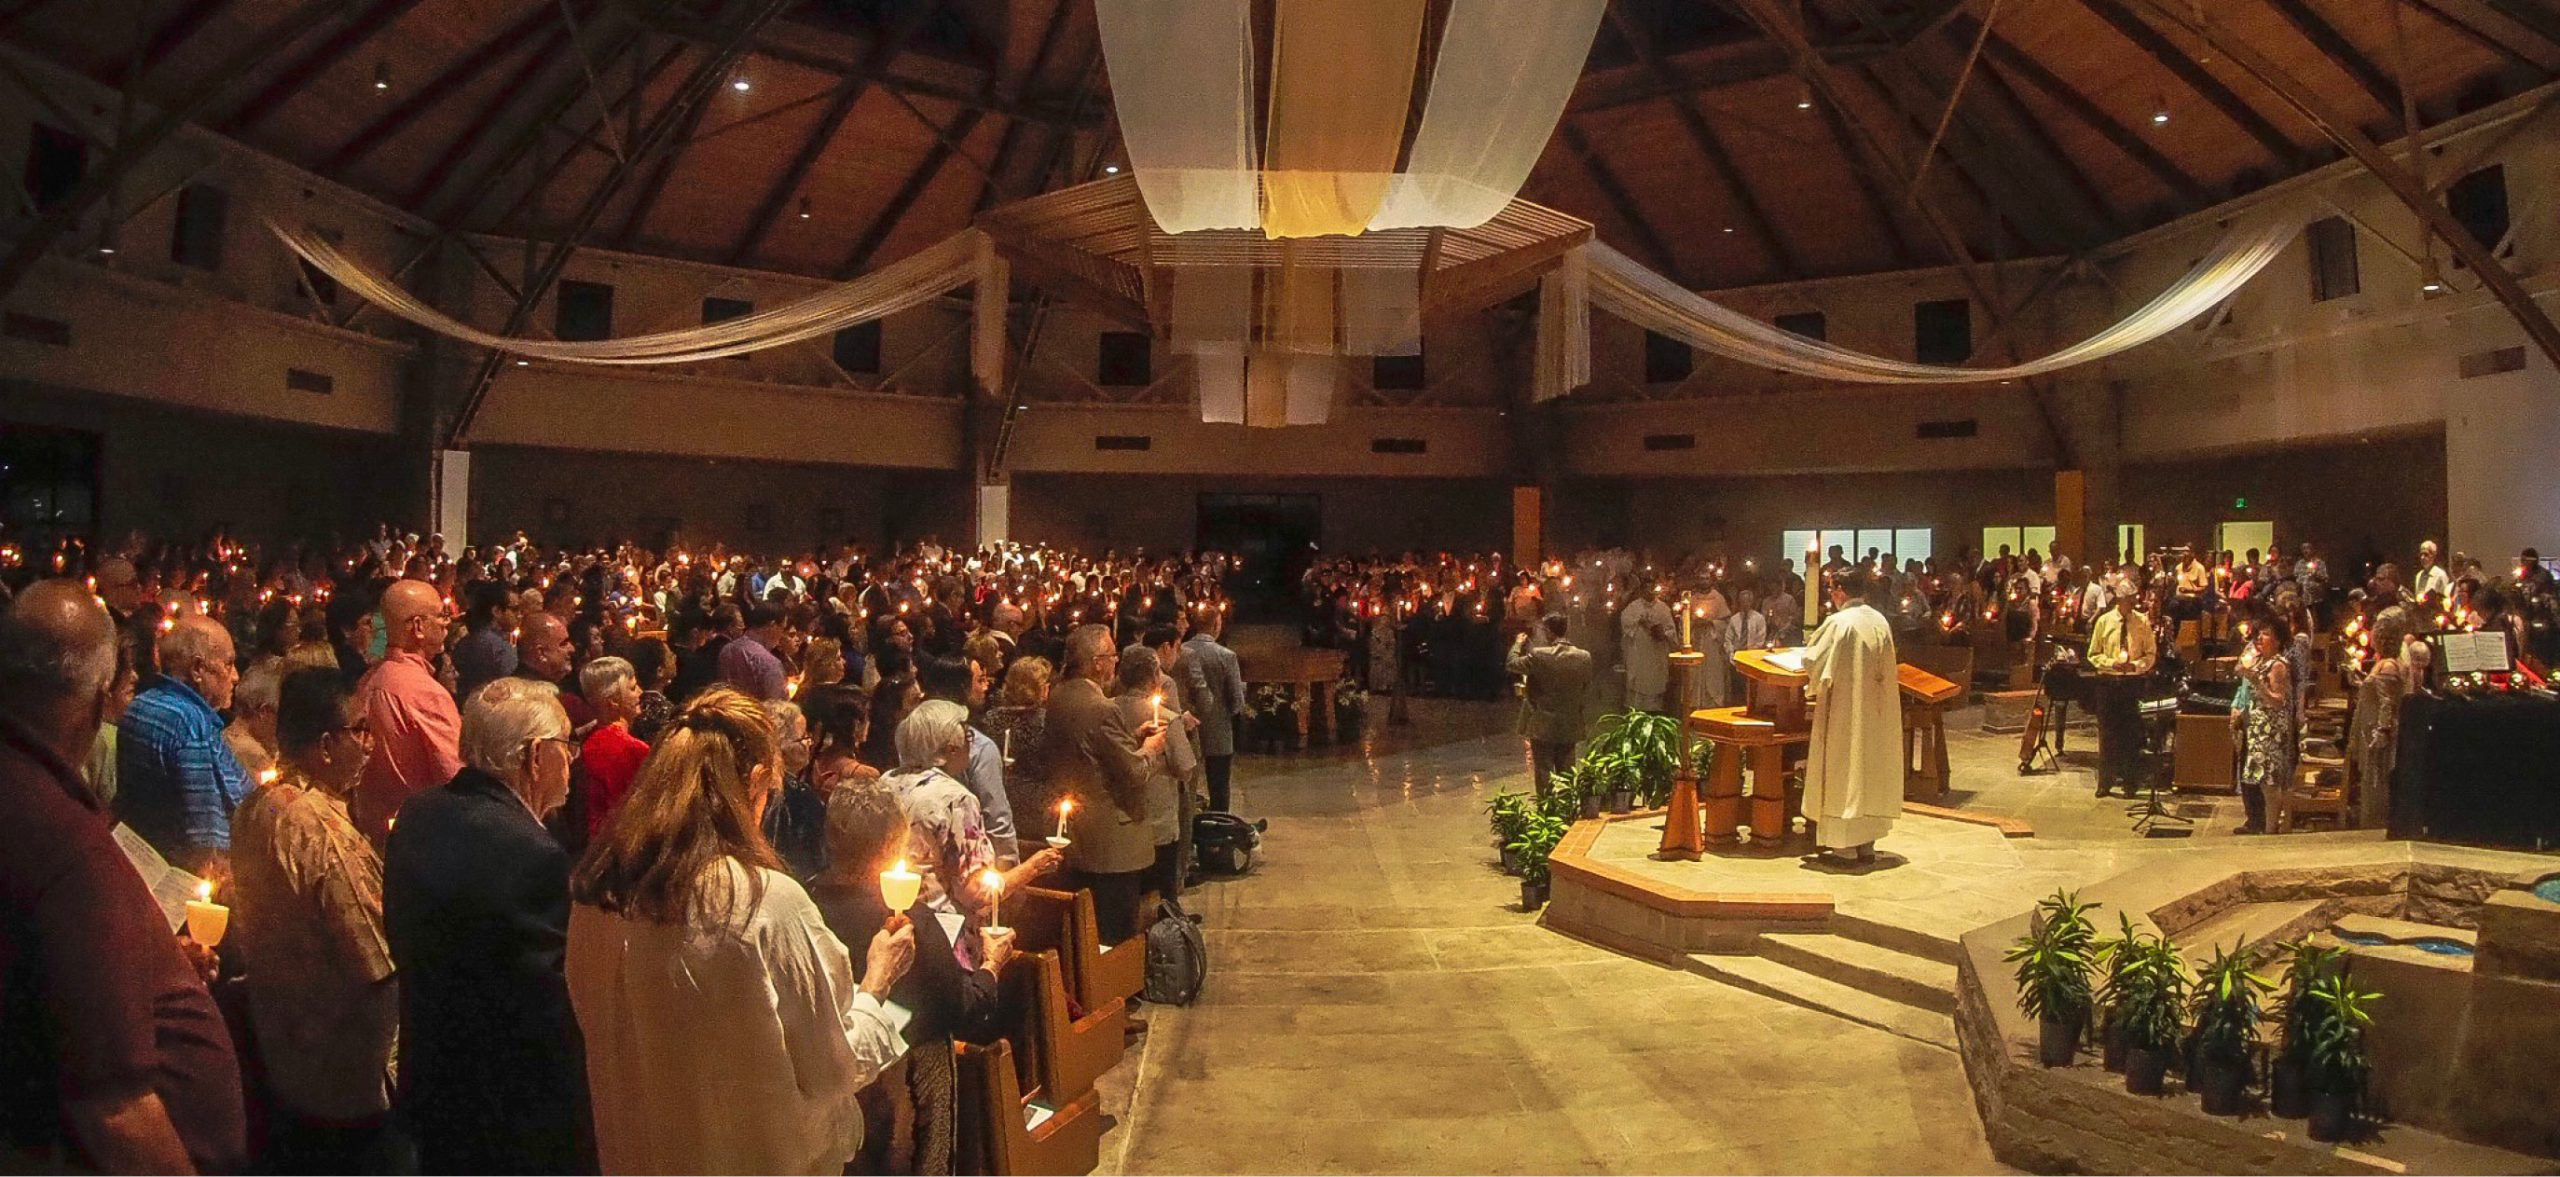 Easter-Vigil-2019-Exhultant-scaled